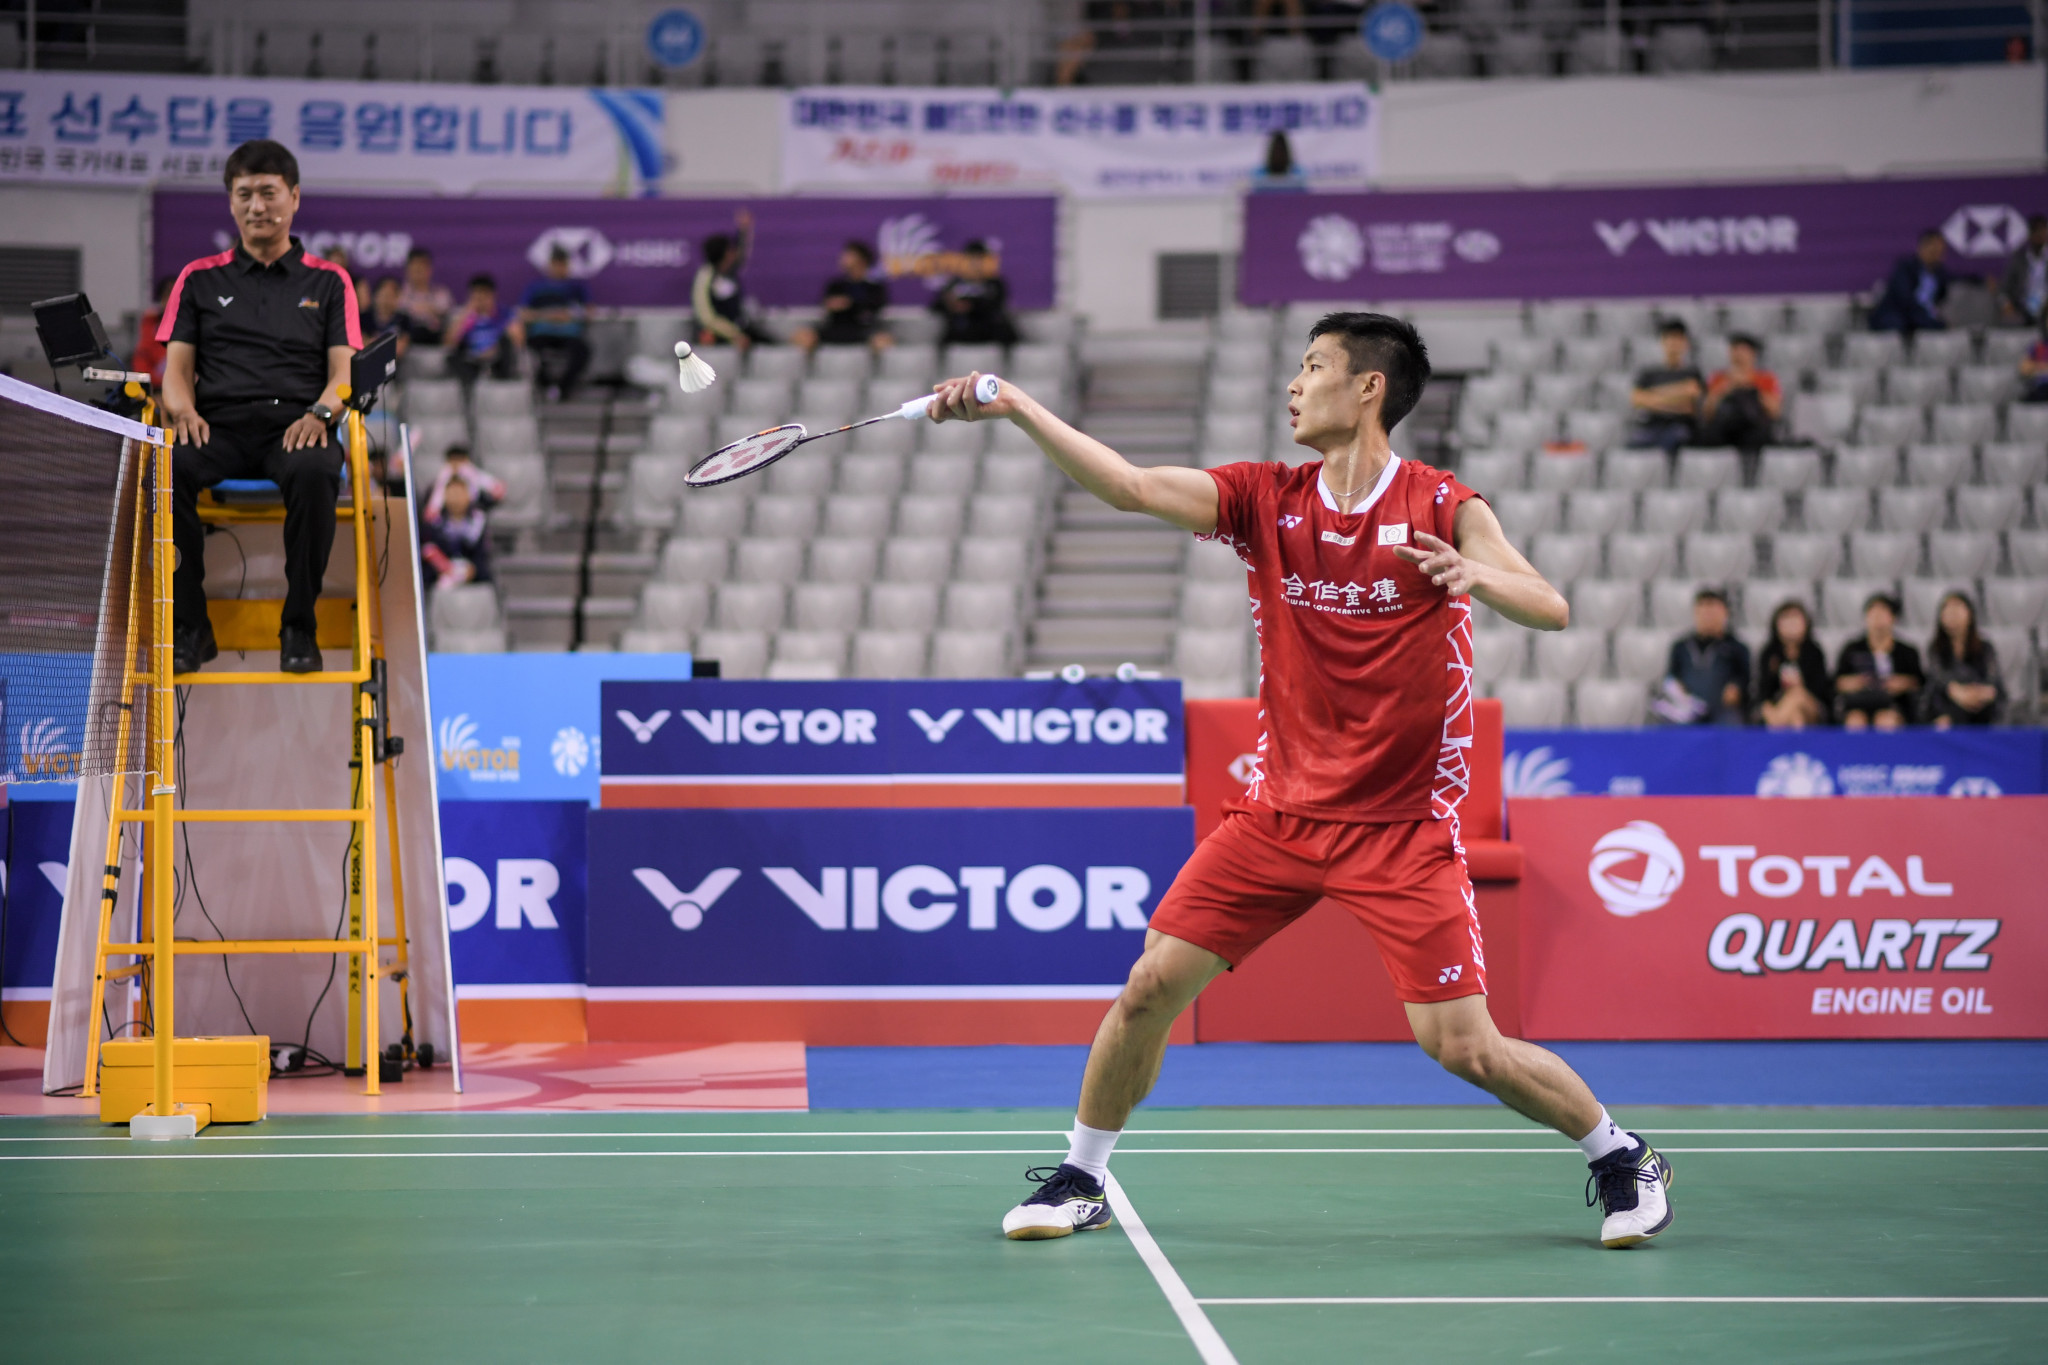 Chou Tien Chen advanced in the men's draw ©Getty Images